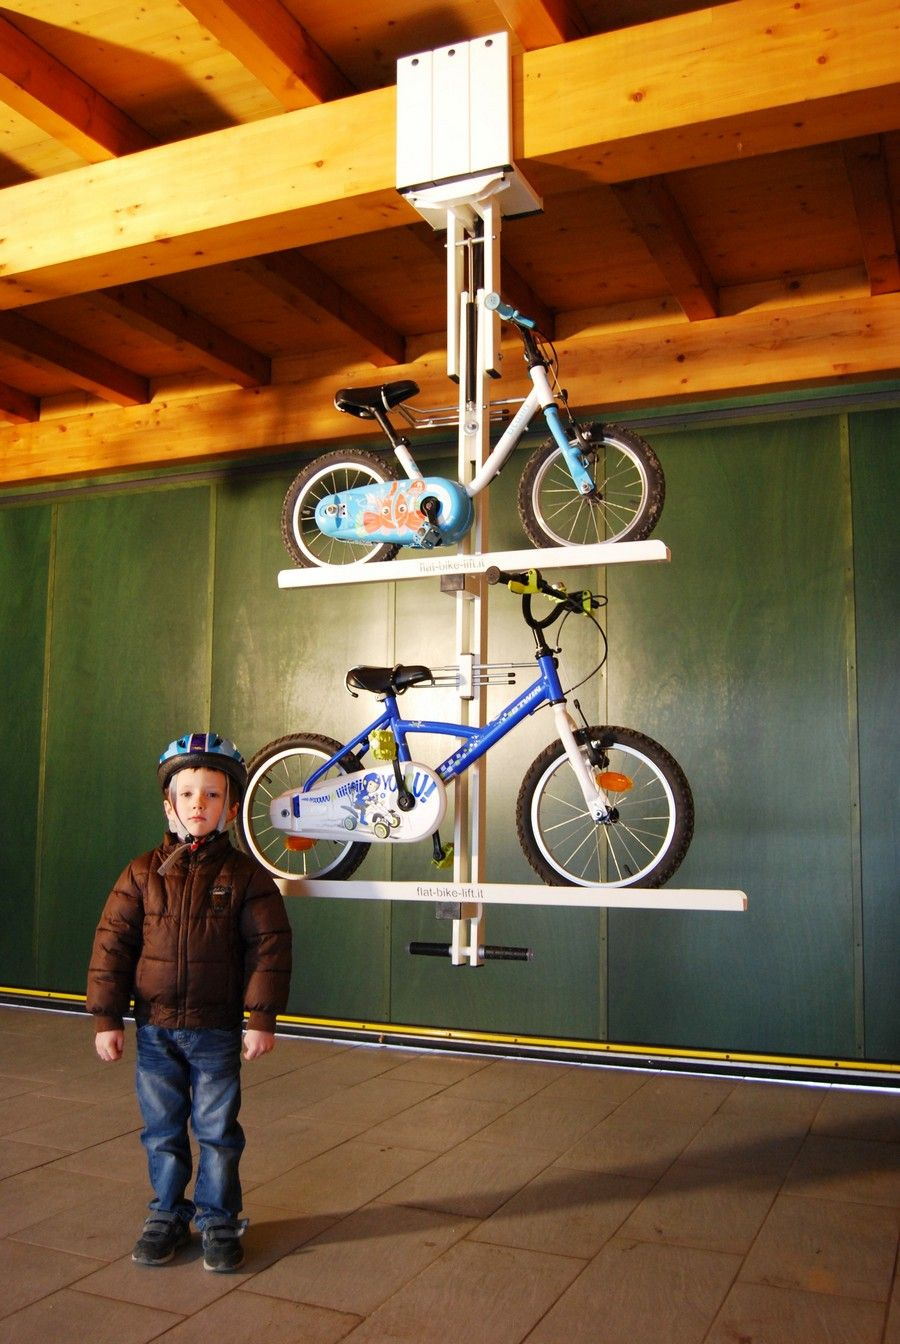 Flat Bike Lift Or How To Park Your Bicycle On The Ceiling